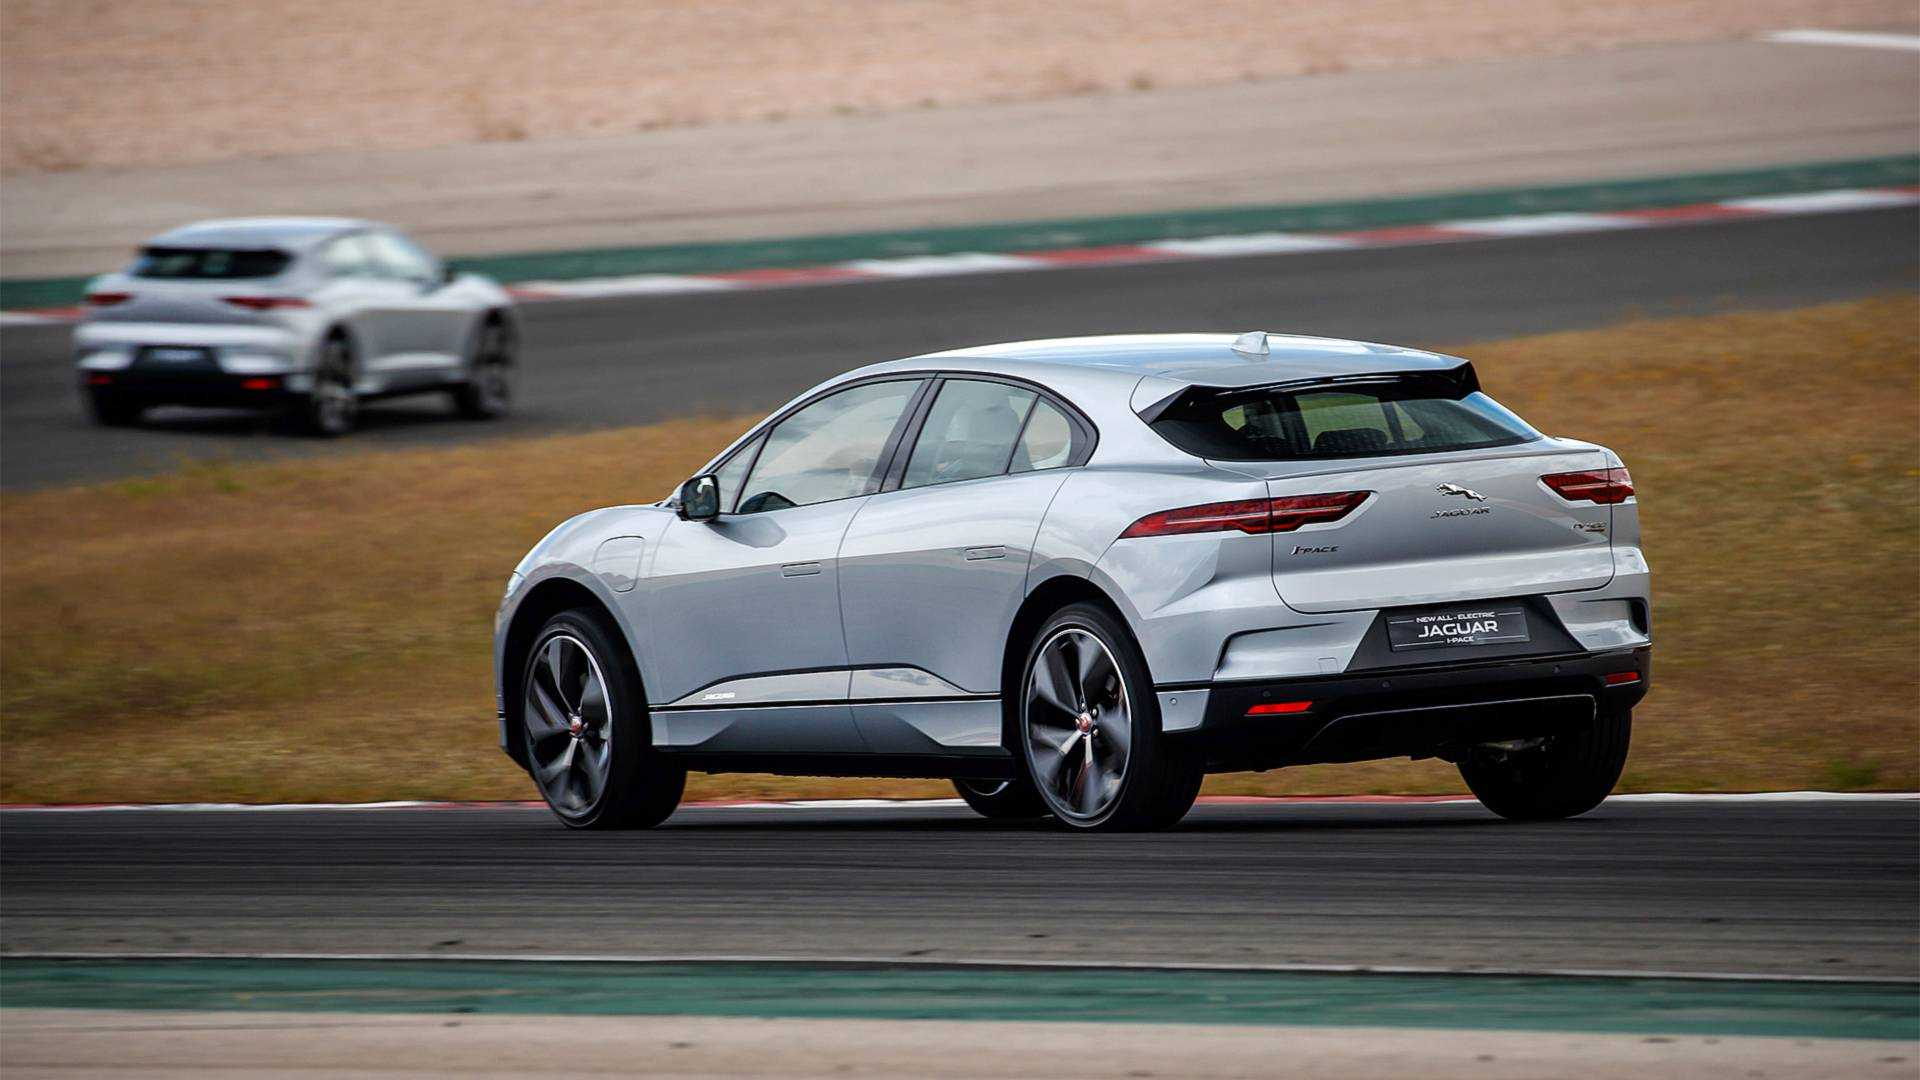 67 All New 2019 Jaguar I Pace Price Design And Review